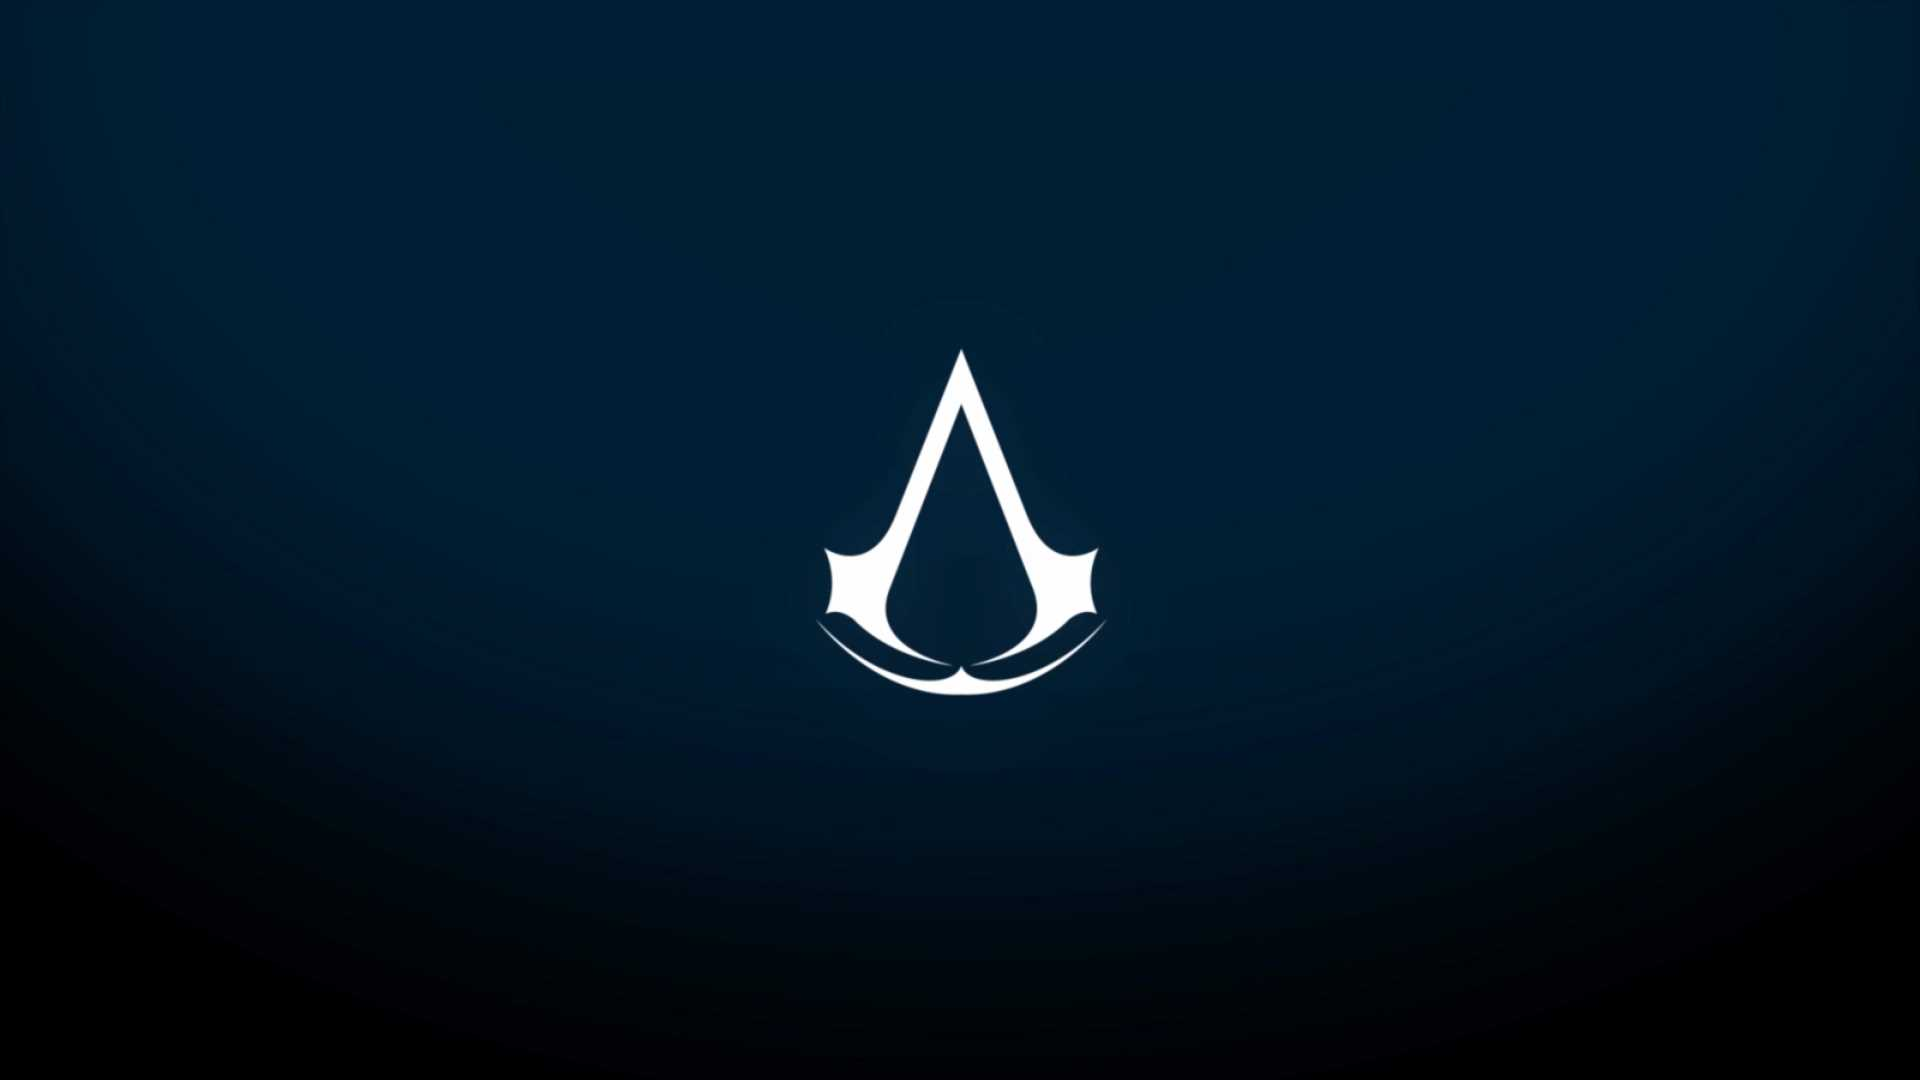 Wallpapers fond d 39 ecran pour assassin 39 s creed syndicate for Fond ecran ps4